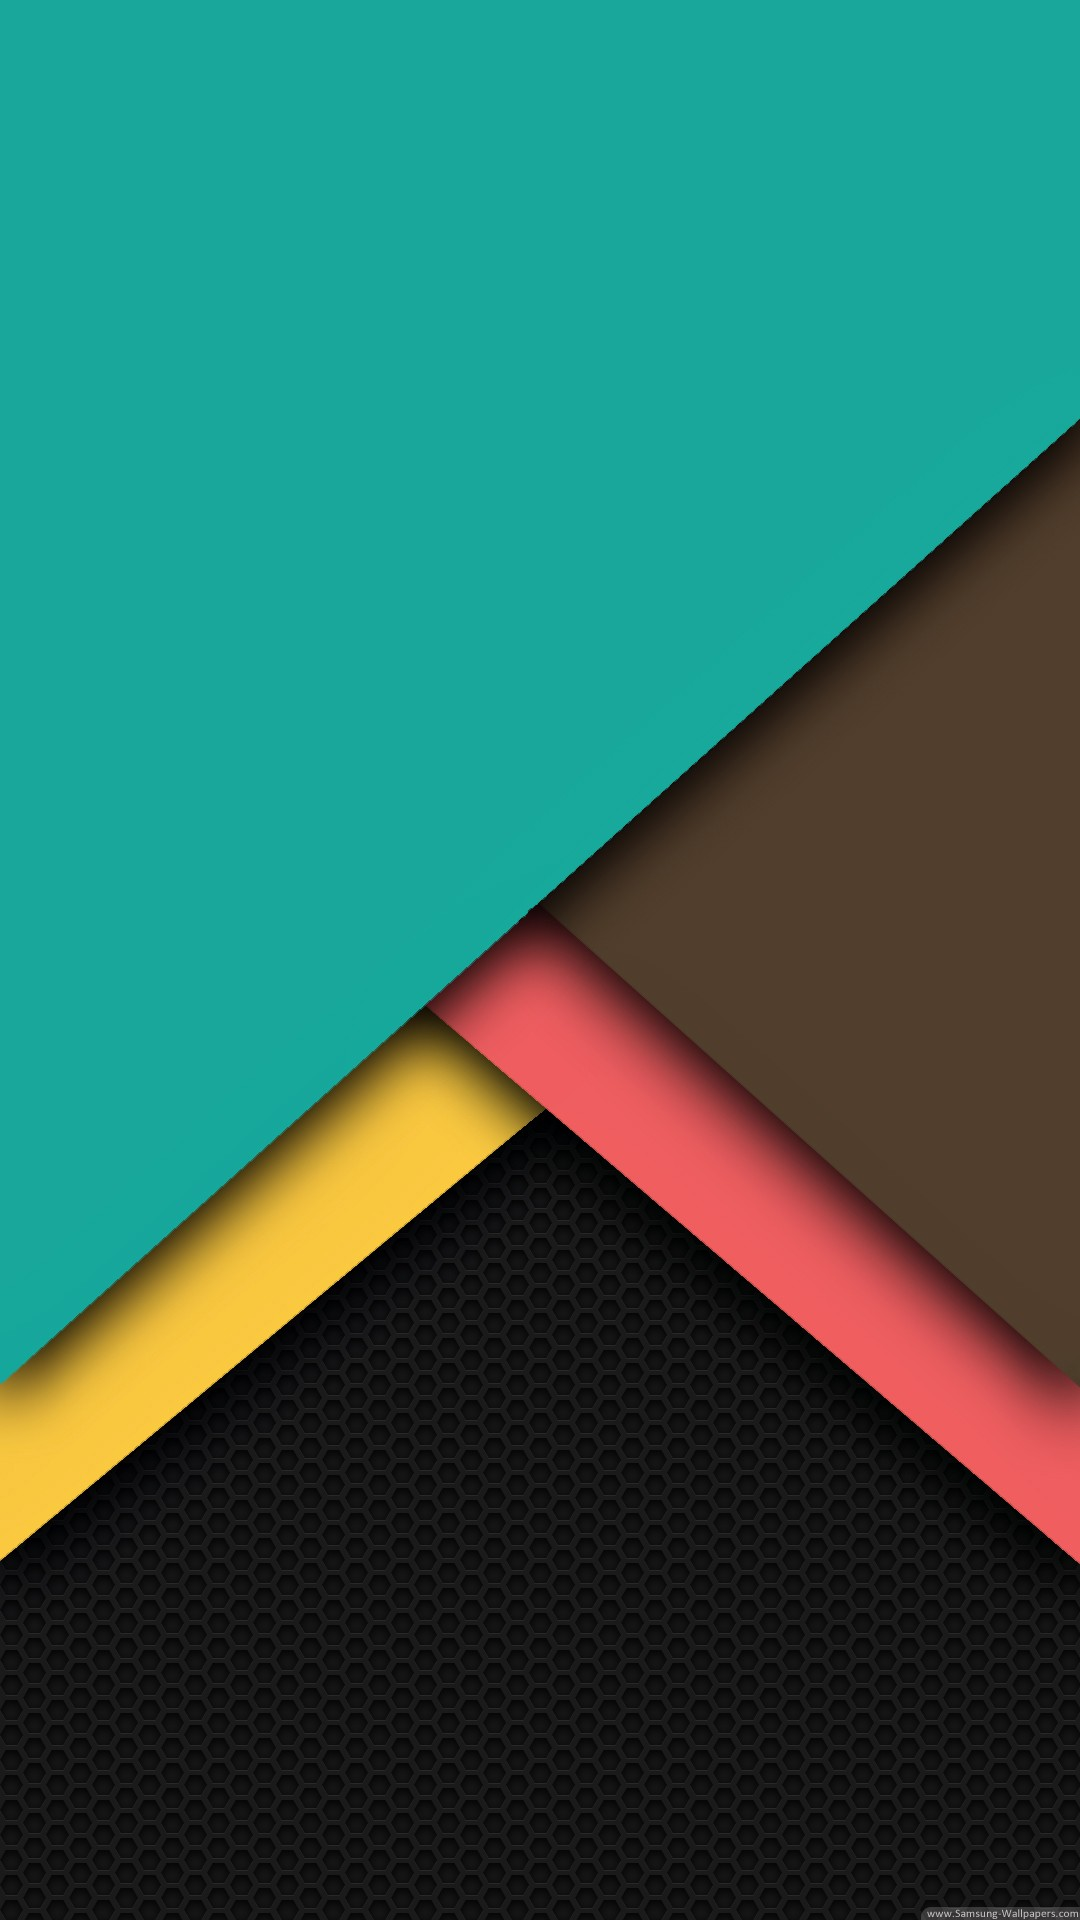 Nexus Wallpaper ·① Download Free Awesome Backgrounds For